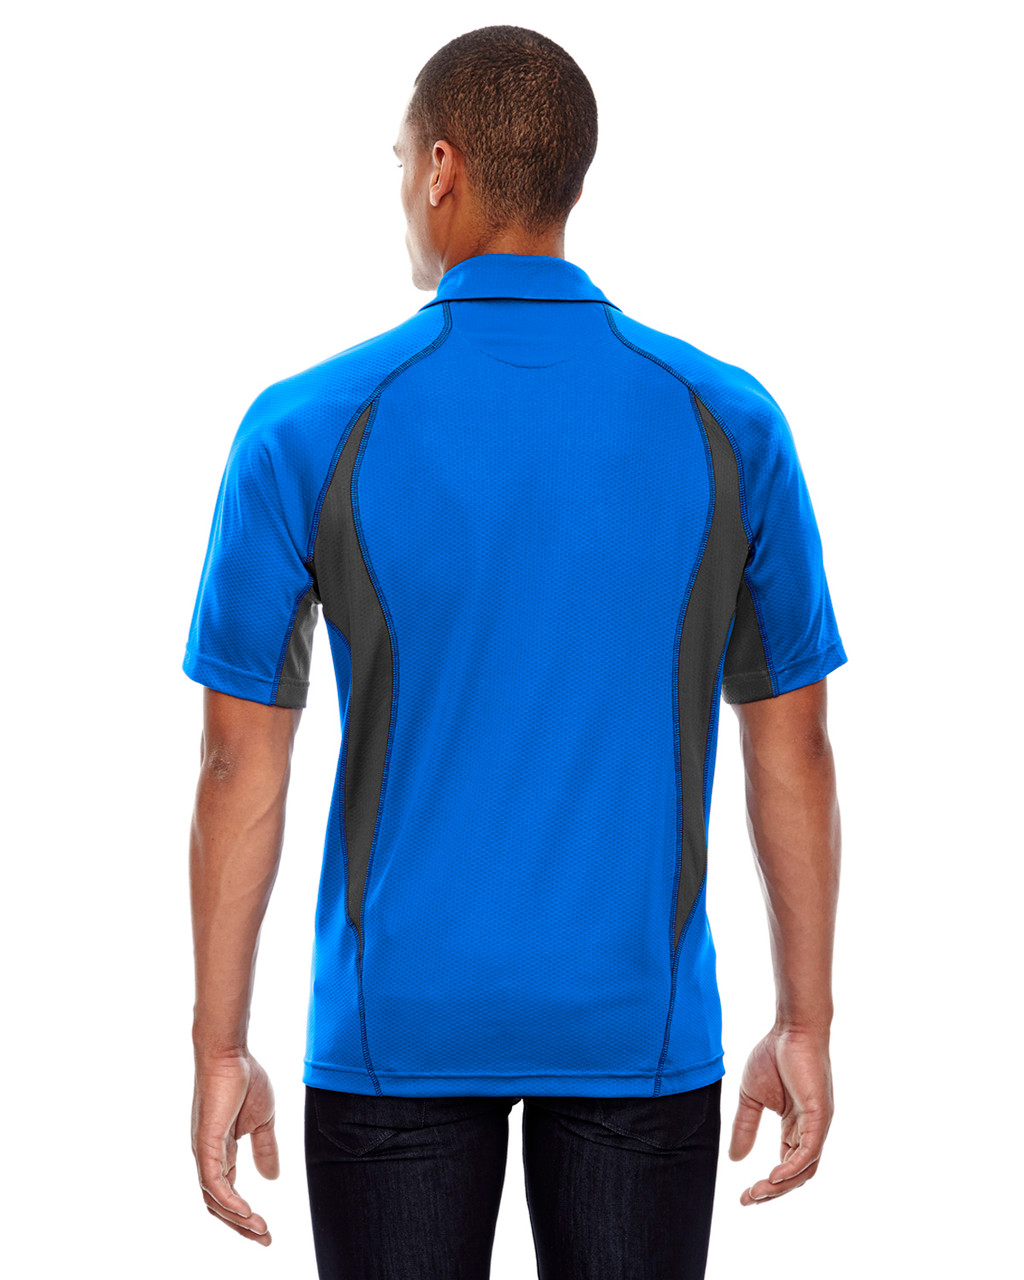 Olympic Blue - Back, 88657 North End Sport Red Serac UTK Performance Zippered Polo Shirt